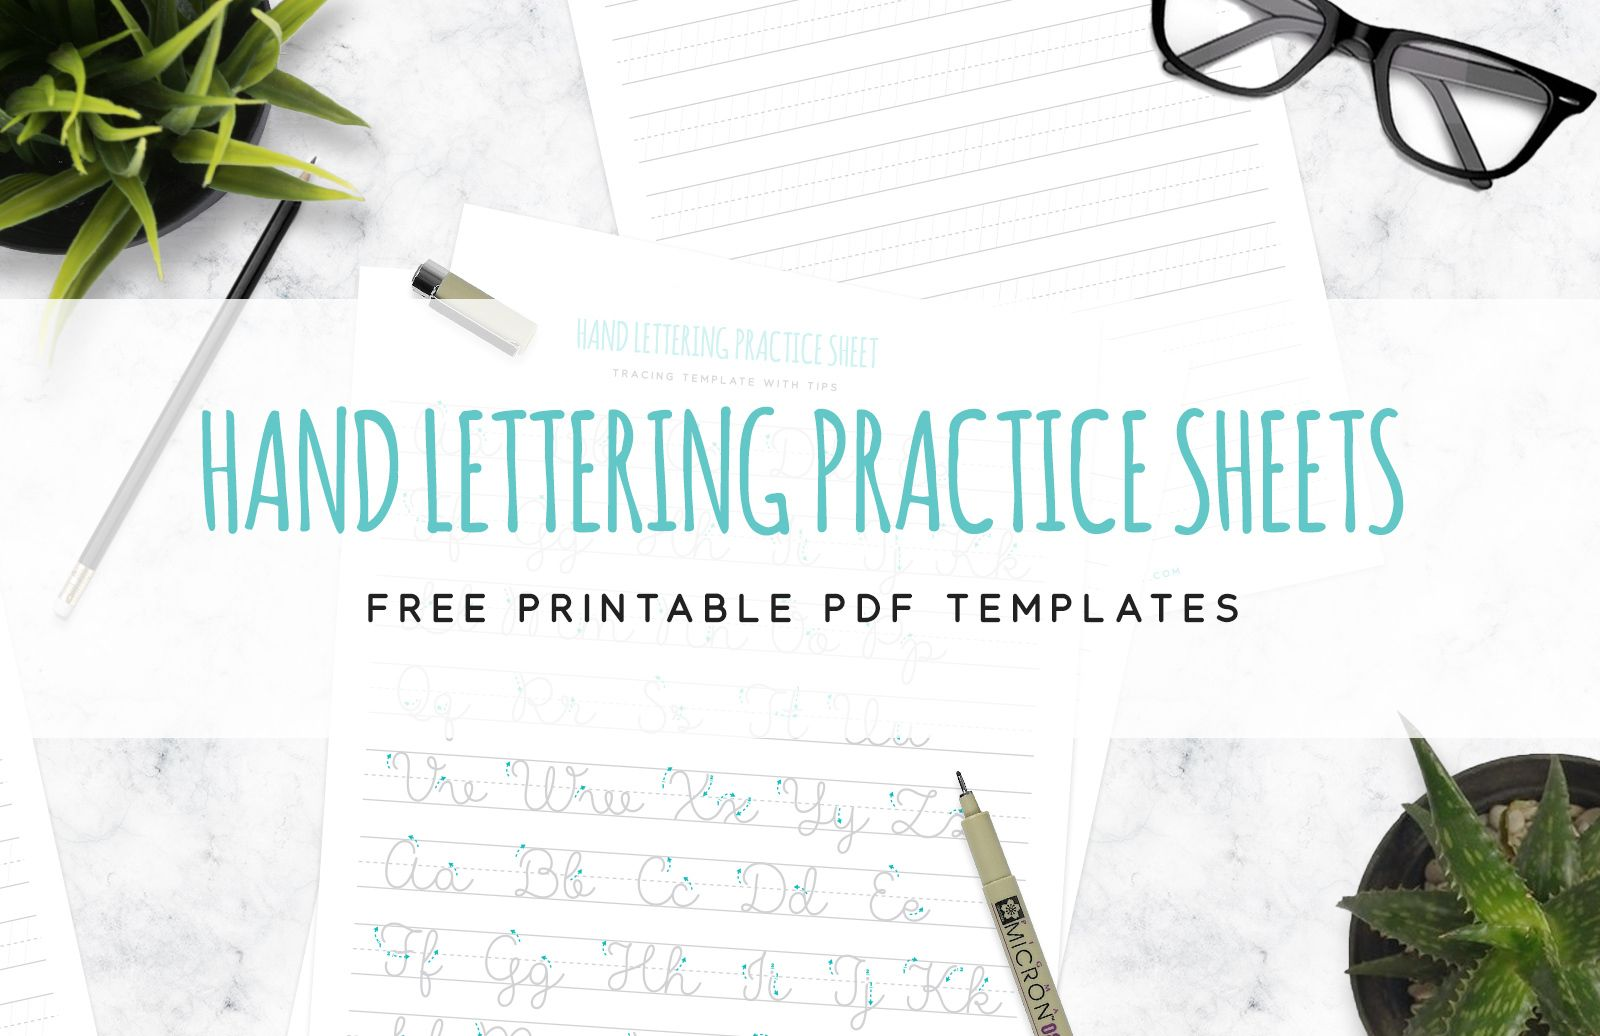 Free Hand Lettering Practice Sheet Mockup In Psd